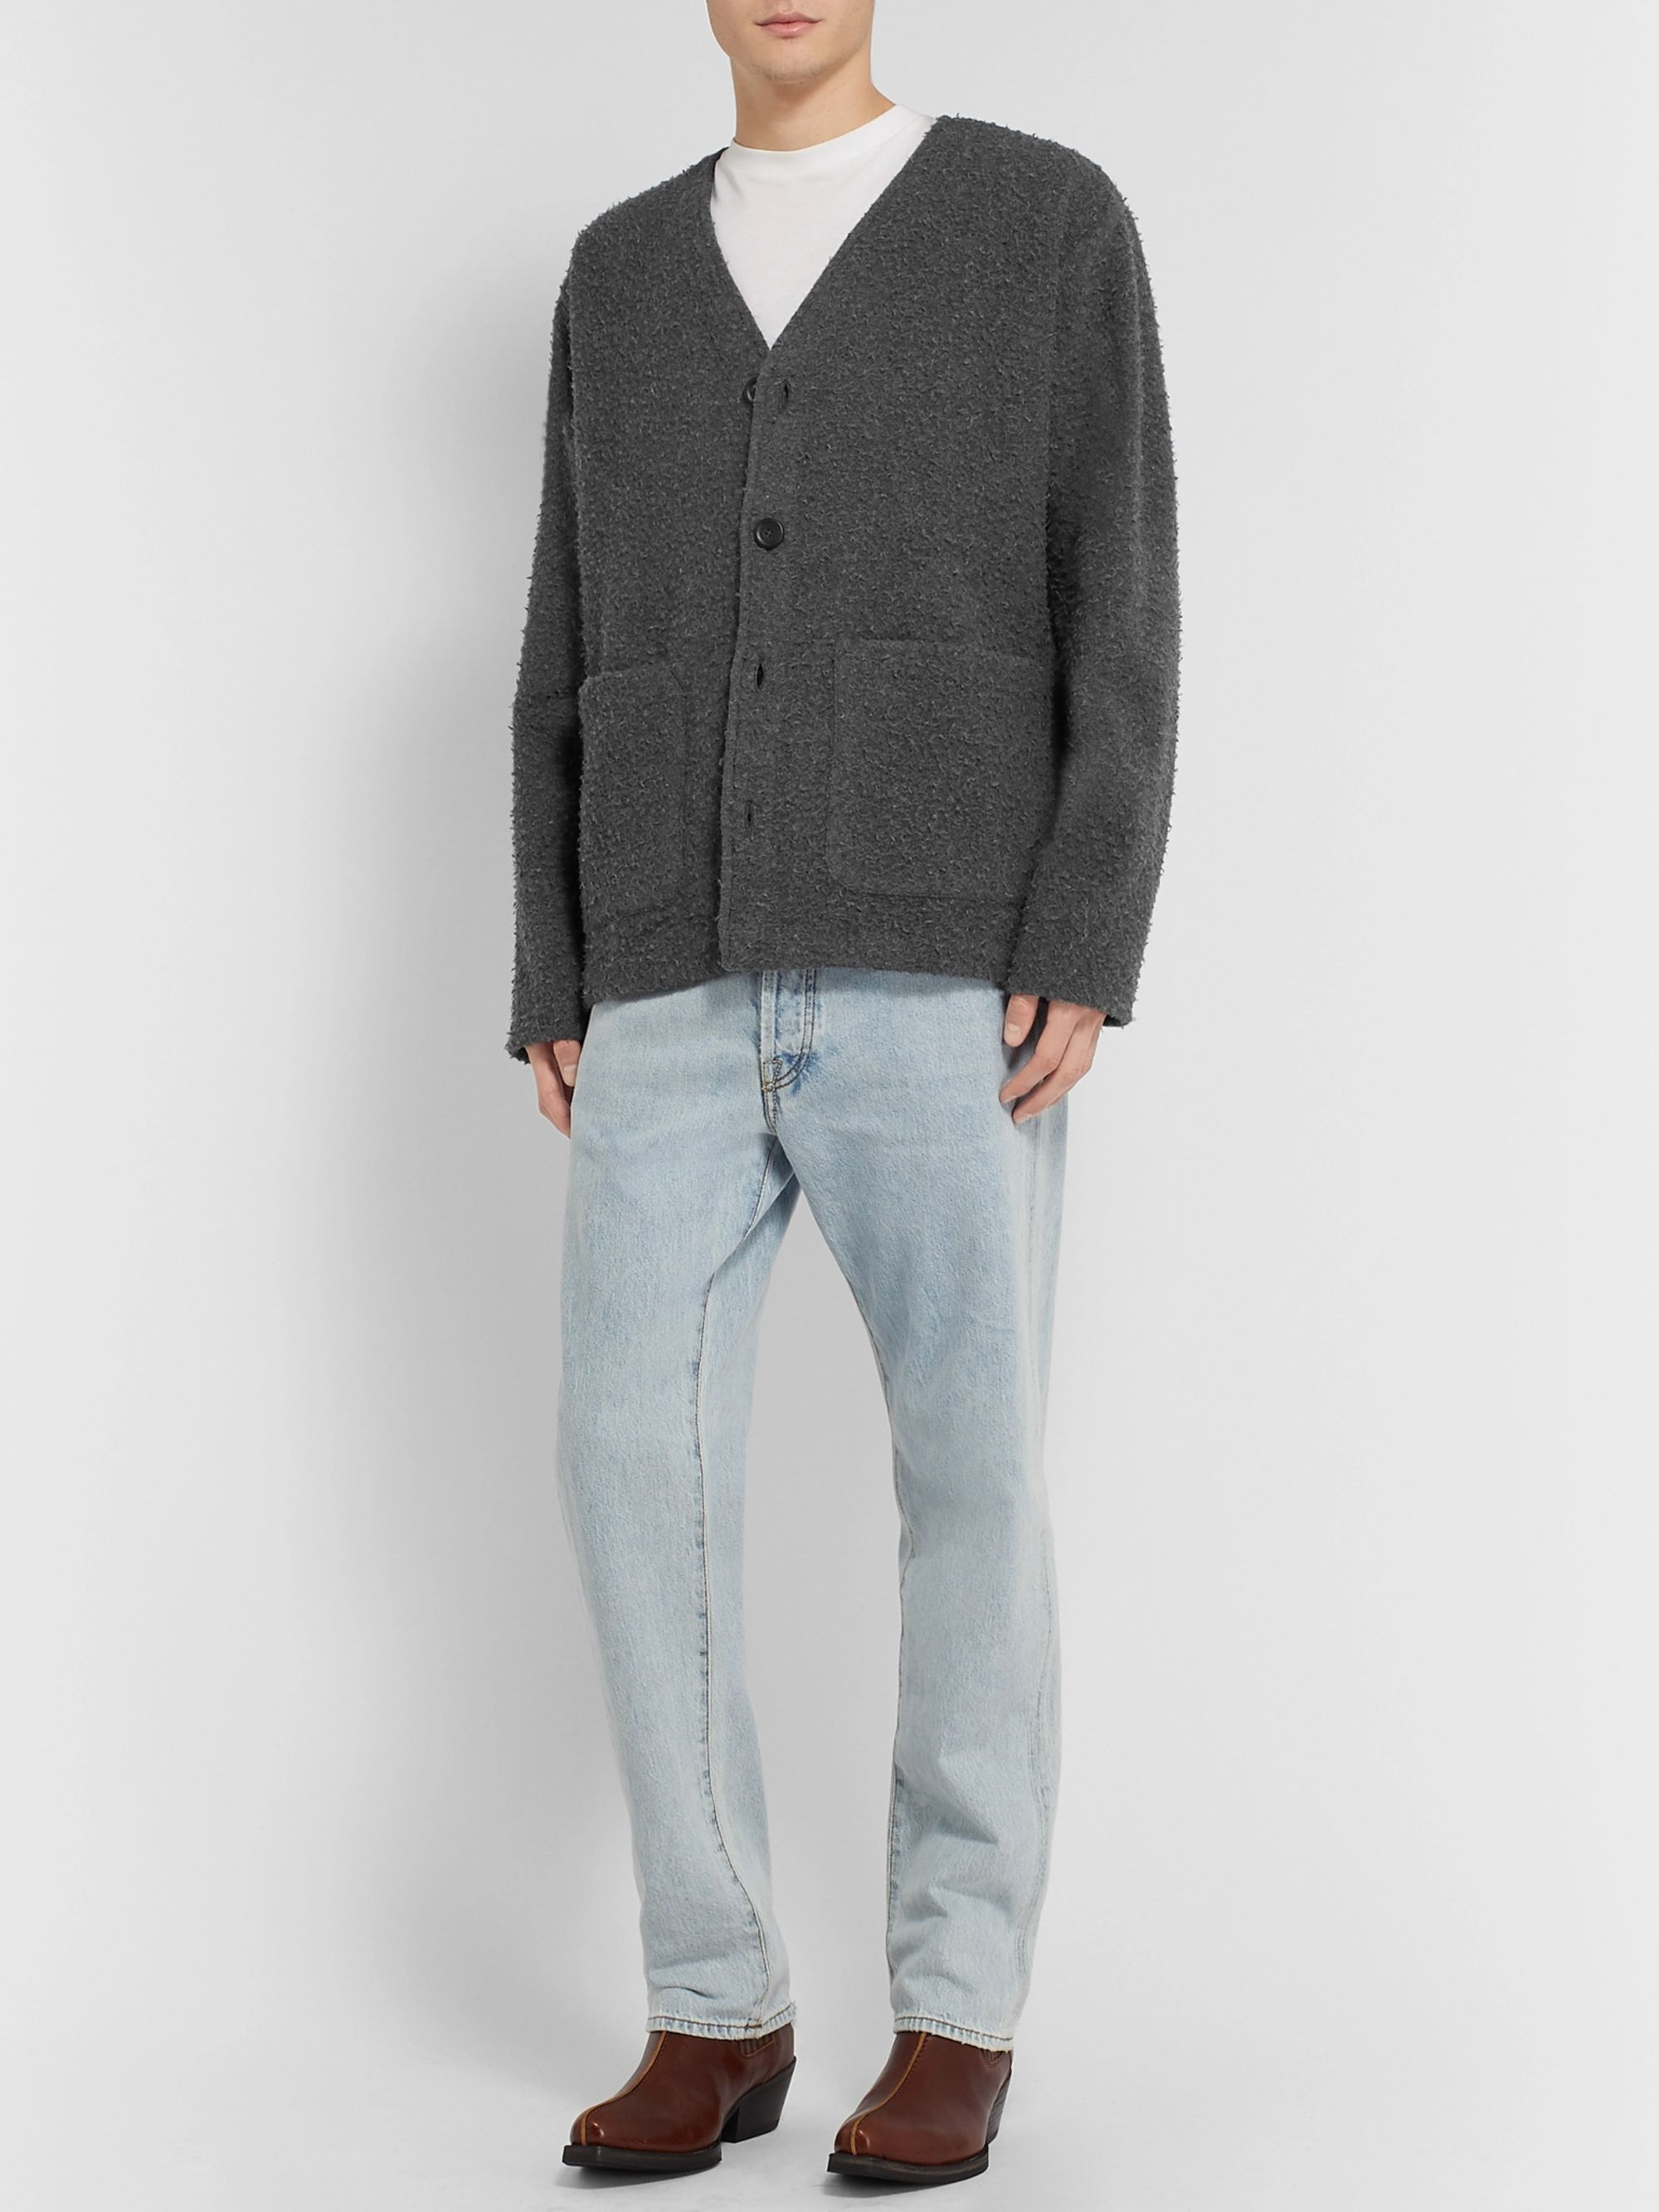 Our Legacy Textured Wool-Blend Cardigan